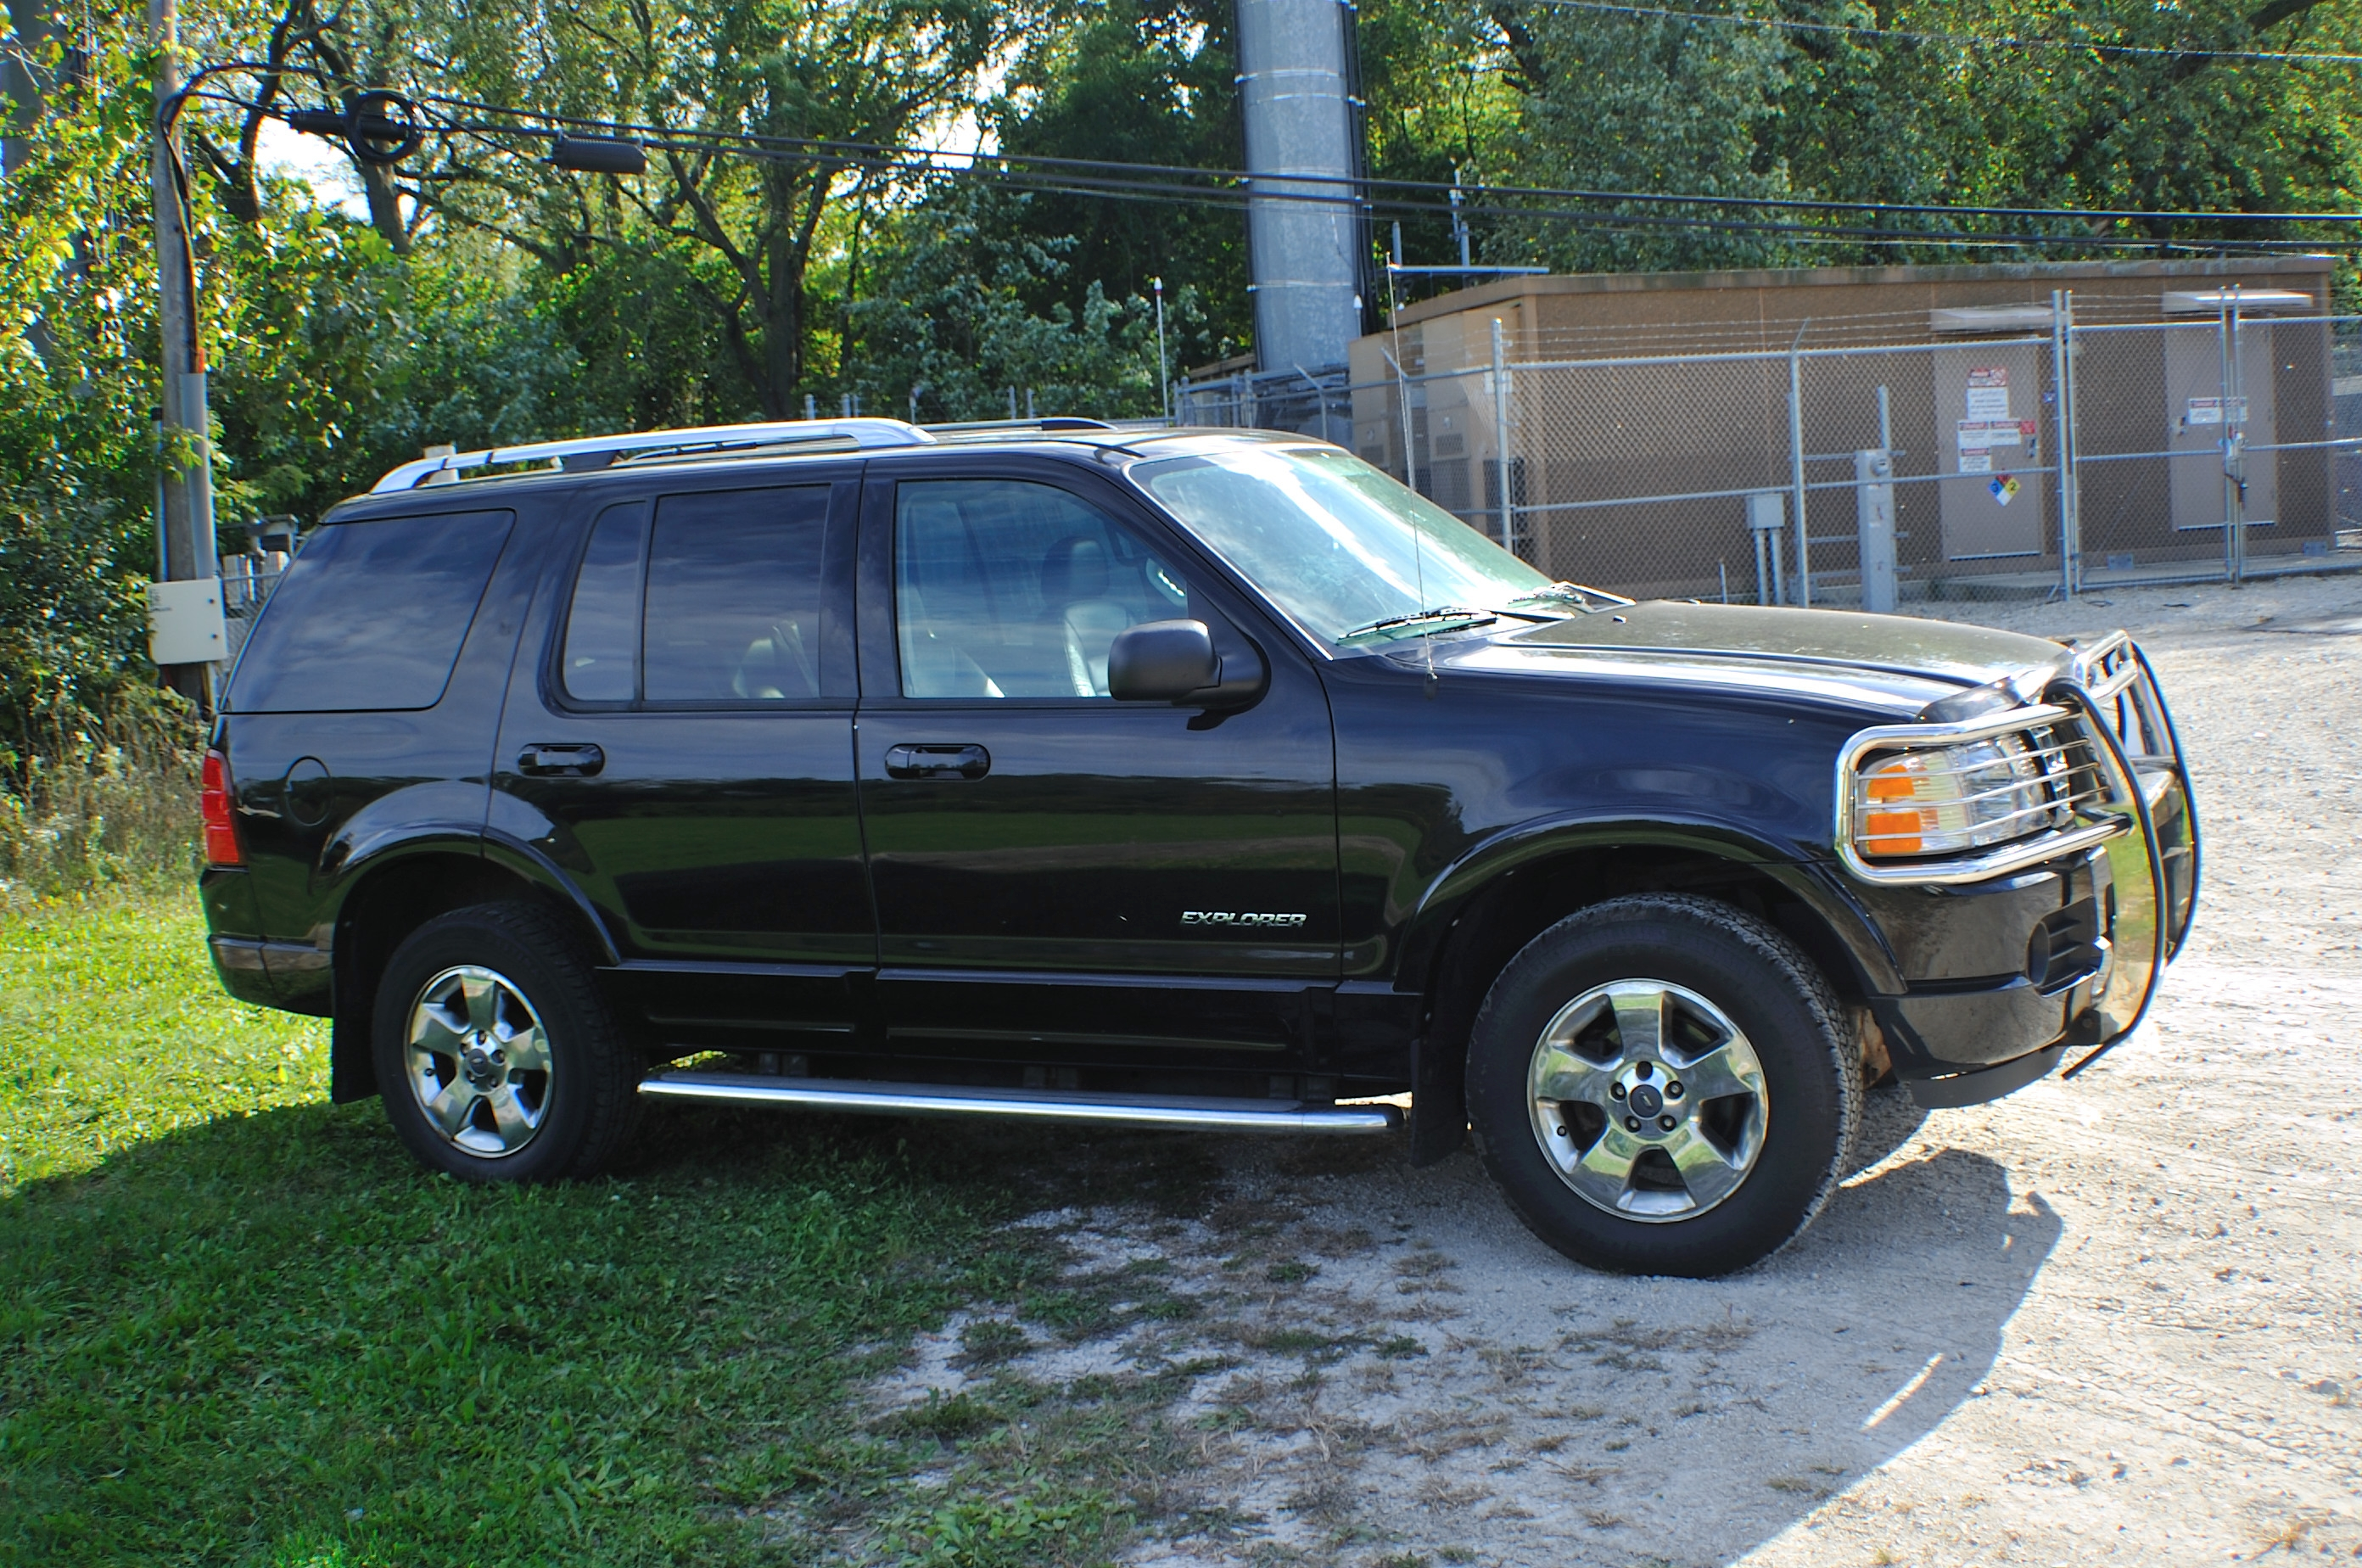 2004 Ford Explorer XLT Black Limited Used SUV 4x4 Sale Bannockburn Barrington Beach Park